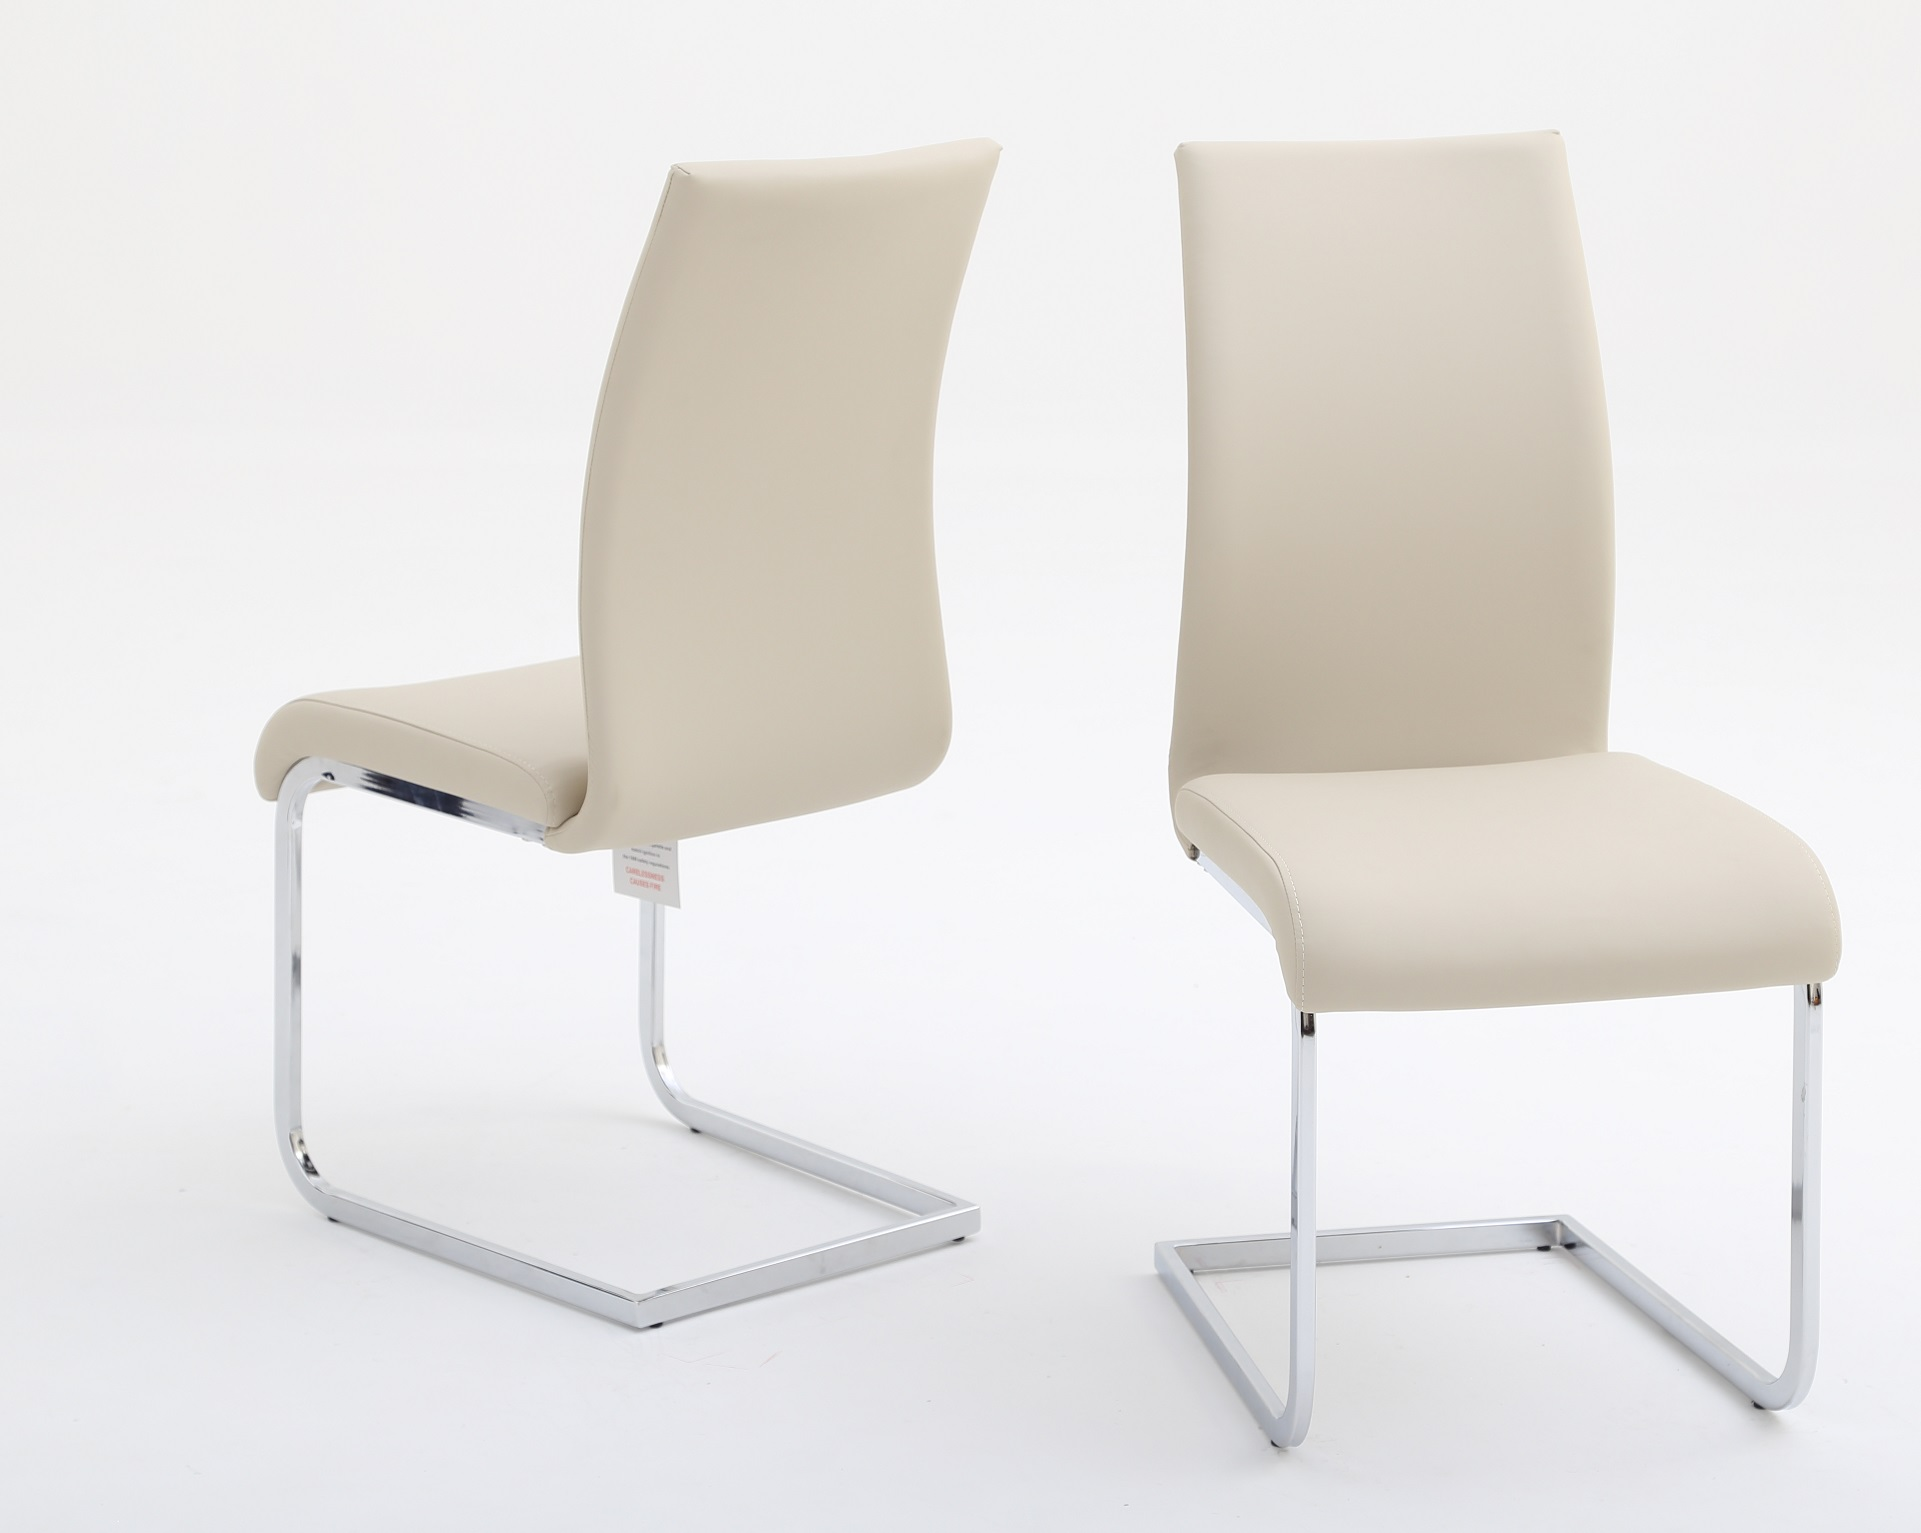 https://www.firstfurniture.co.uk/pub/media/catalog/product/p/a/paolo_chair_cream.jpg